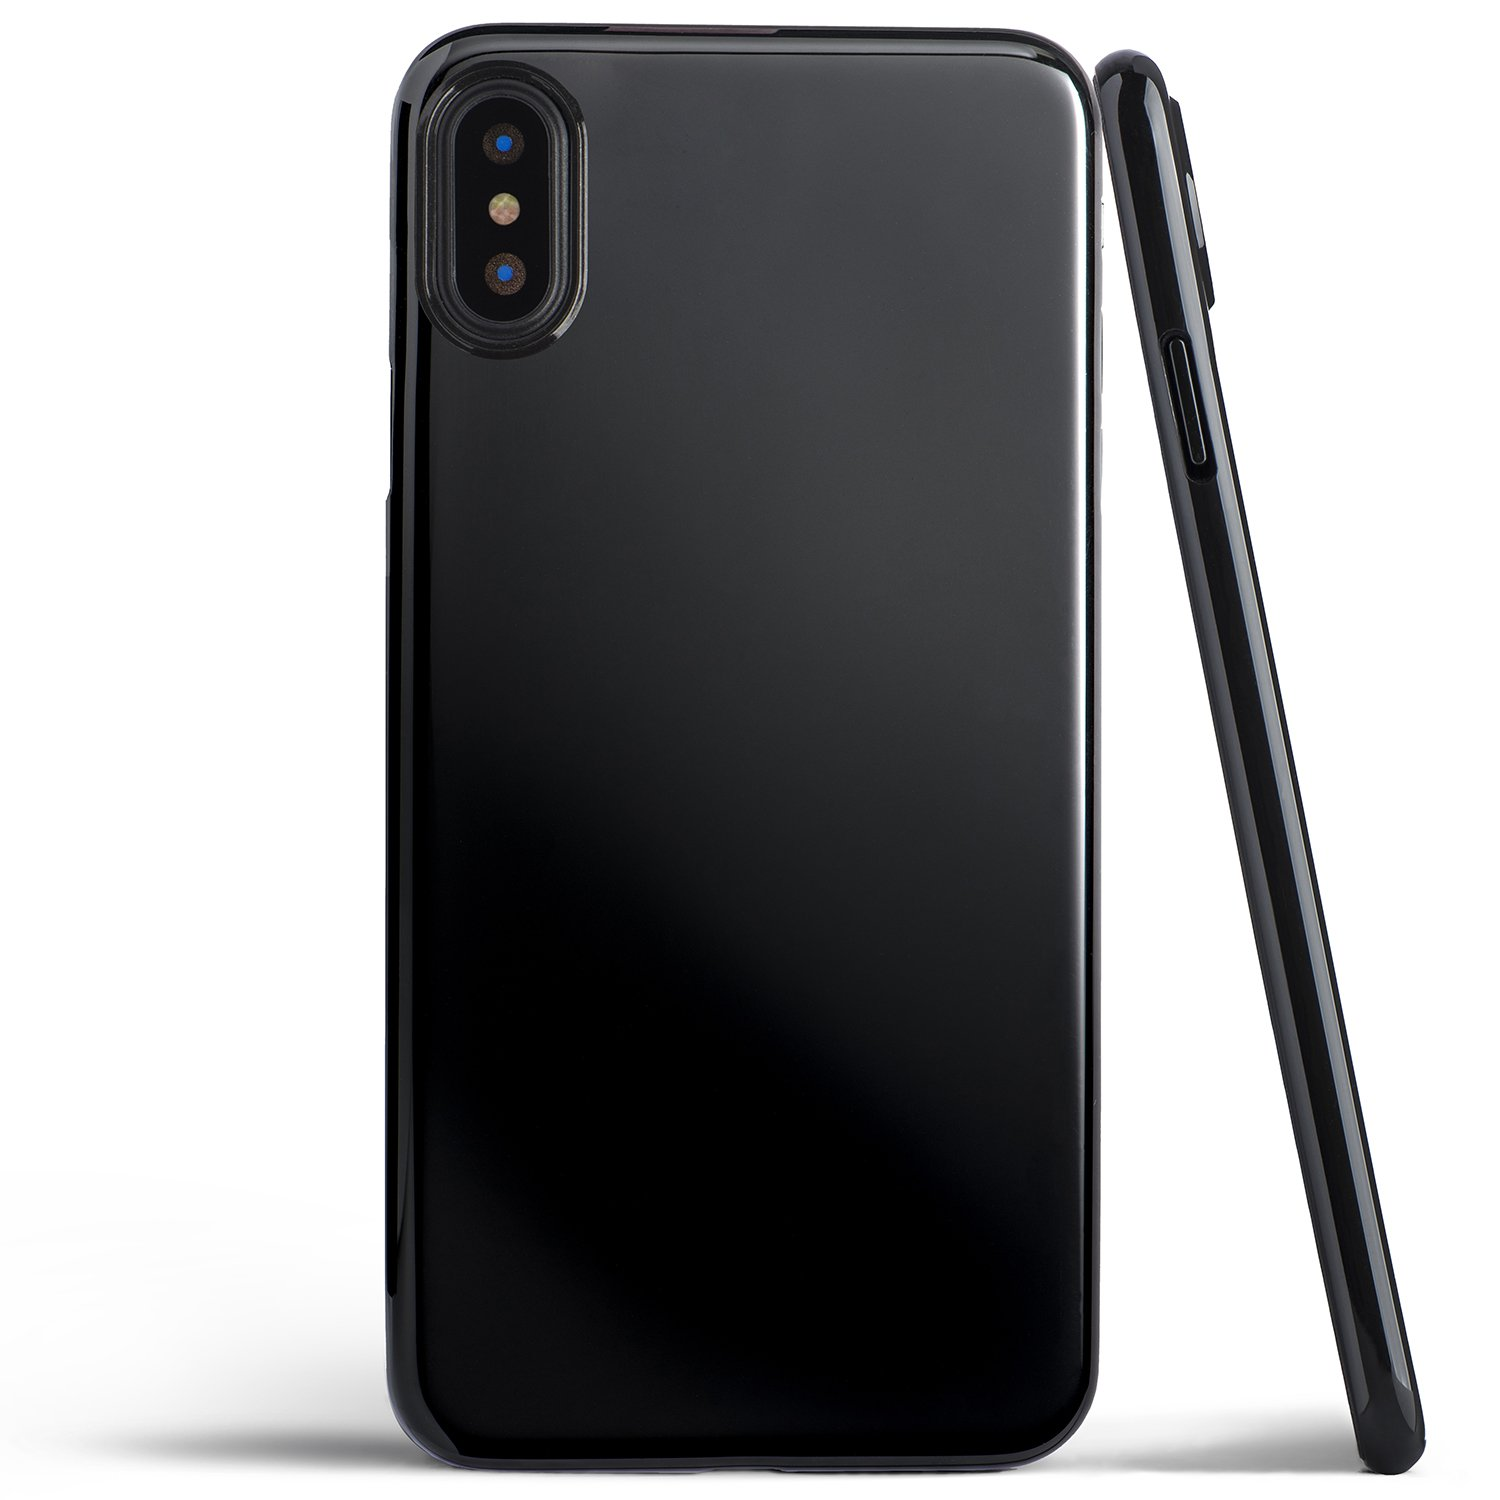 san francisco 6c2a4 5c02e iPhone X Case, Thinnest Cover Premium Ultra Thin Light Slim Minimal  Anti-Scratch Protective - for Apple iPhone X | totallee (Jet Black)